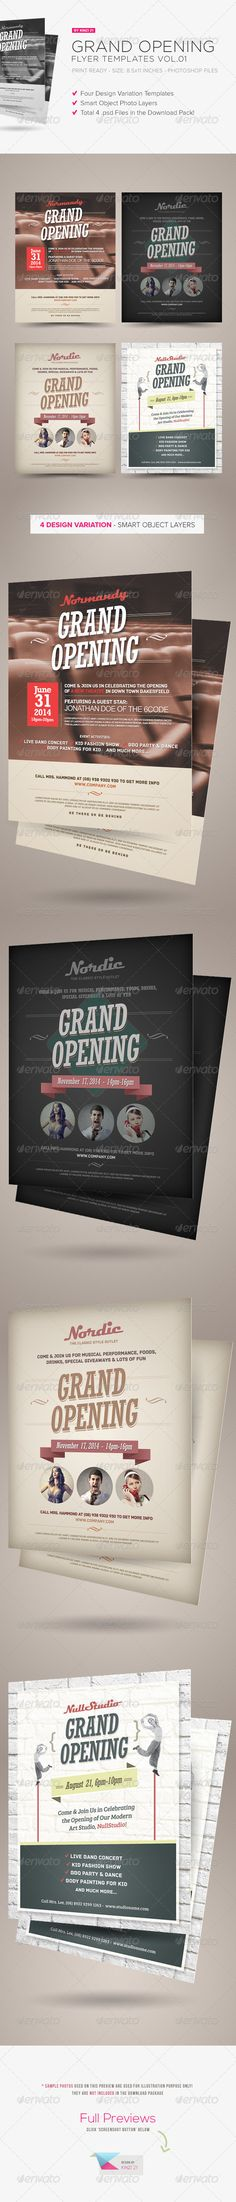 Grand Opening Flyers Vol.01 - you can get the sourcefiles of these flyers here http://graphicriver.net/item/grand-opening-flyers-vol01/5450979?r=kinzi21